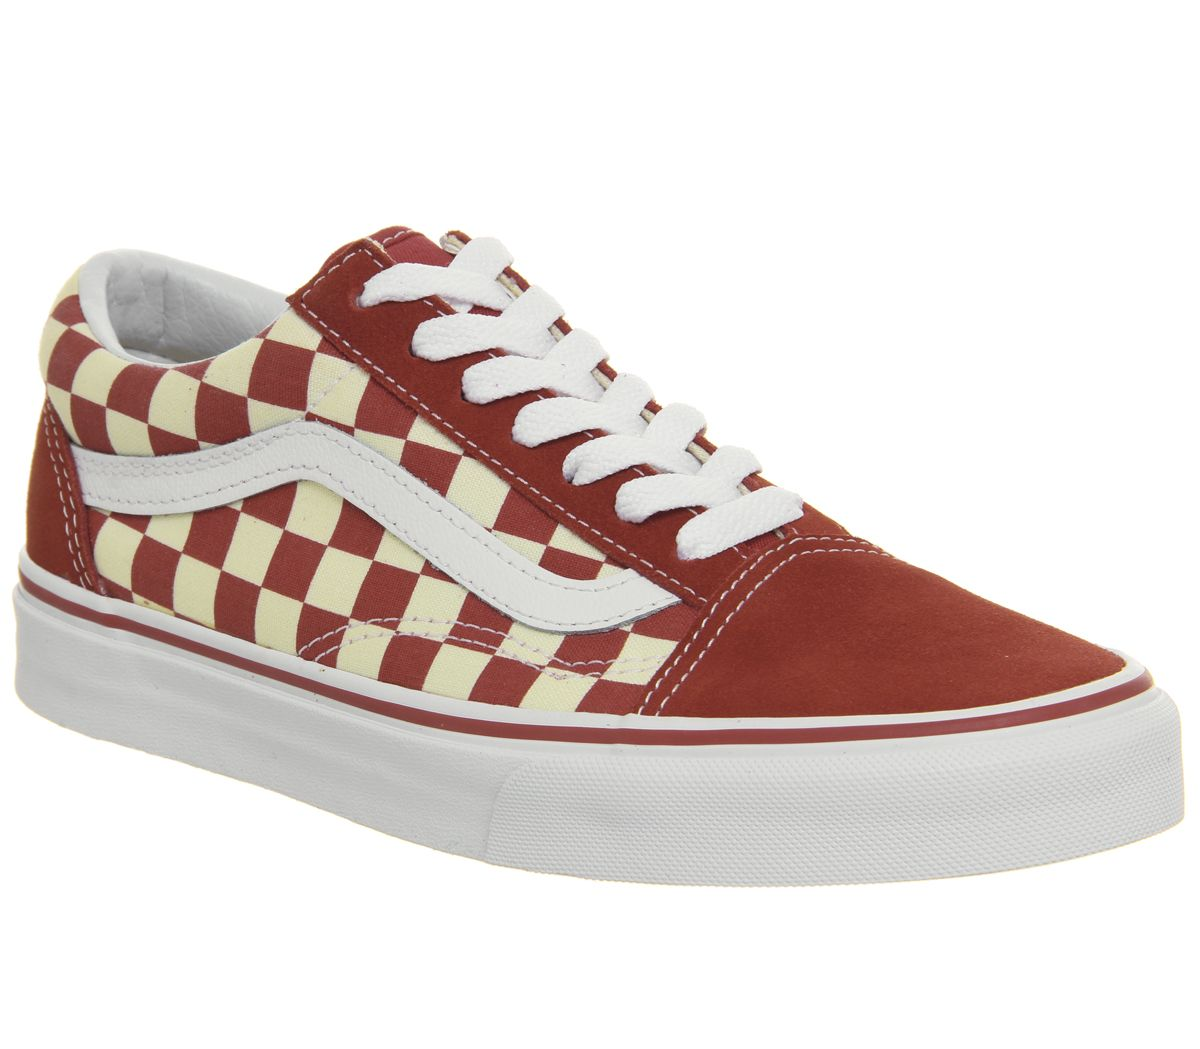 aeaf1d206f5 Vans Old Skool Trainers Racing Red Classic White Checkerboard ...